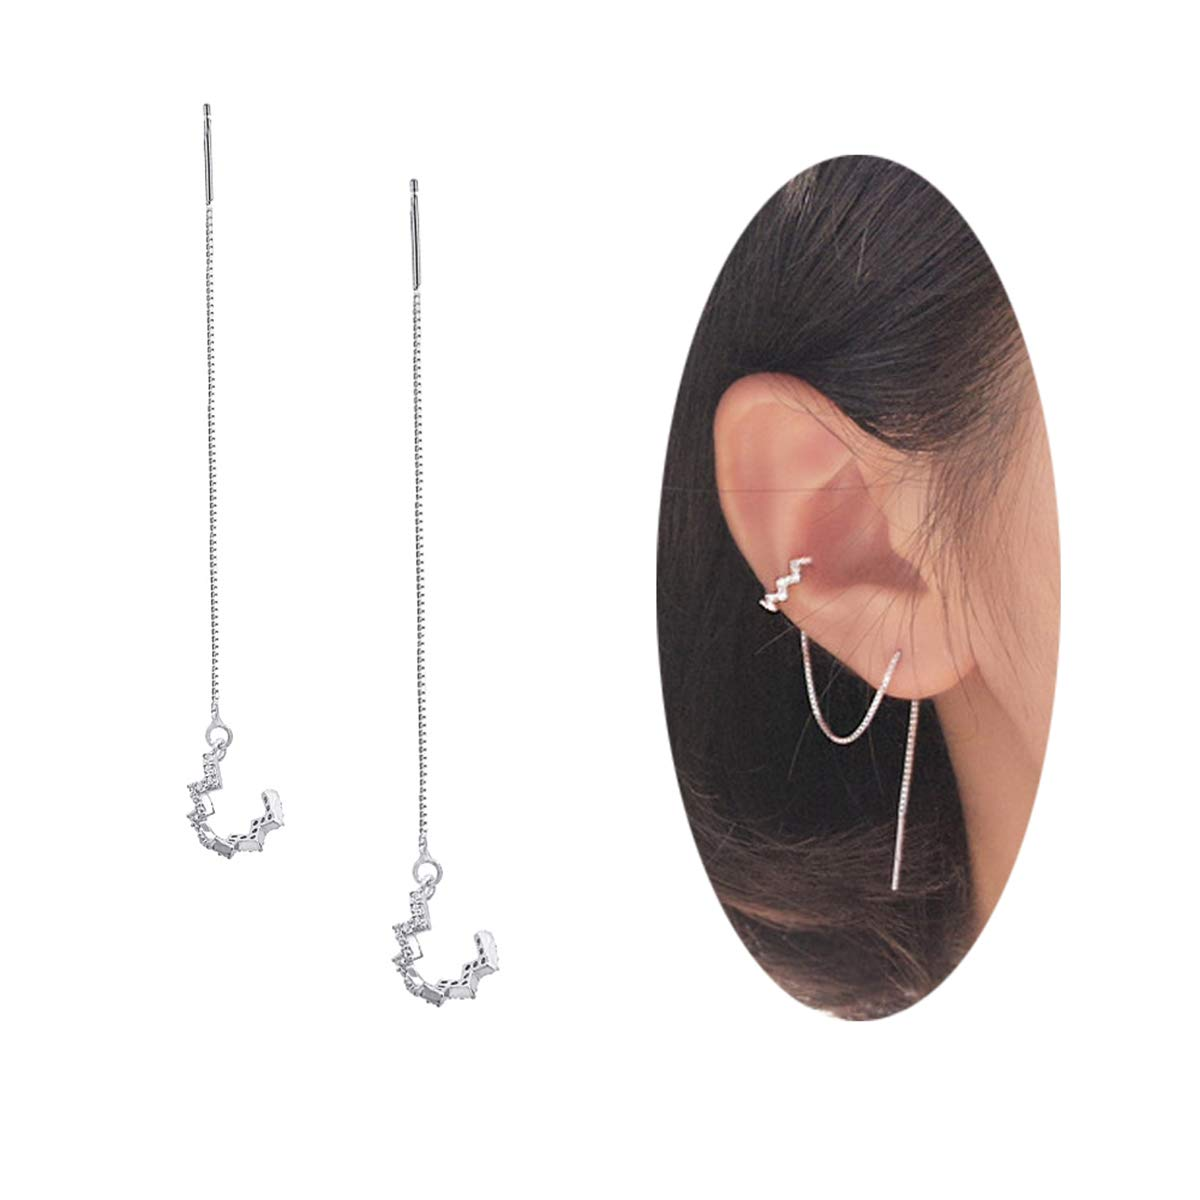 FarryDream 925 Sterling Silver New Arrival Wave Cuff Chain Earrings Wrap Tassel Earrings for Women Perfect Valentine's Day Gifts